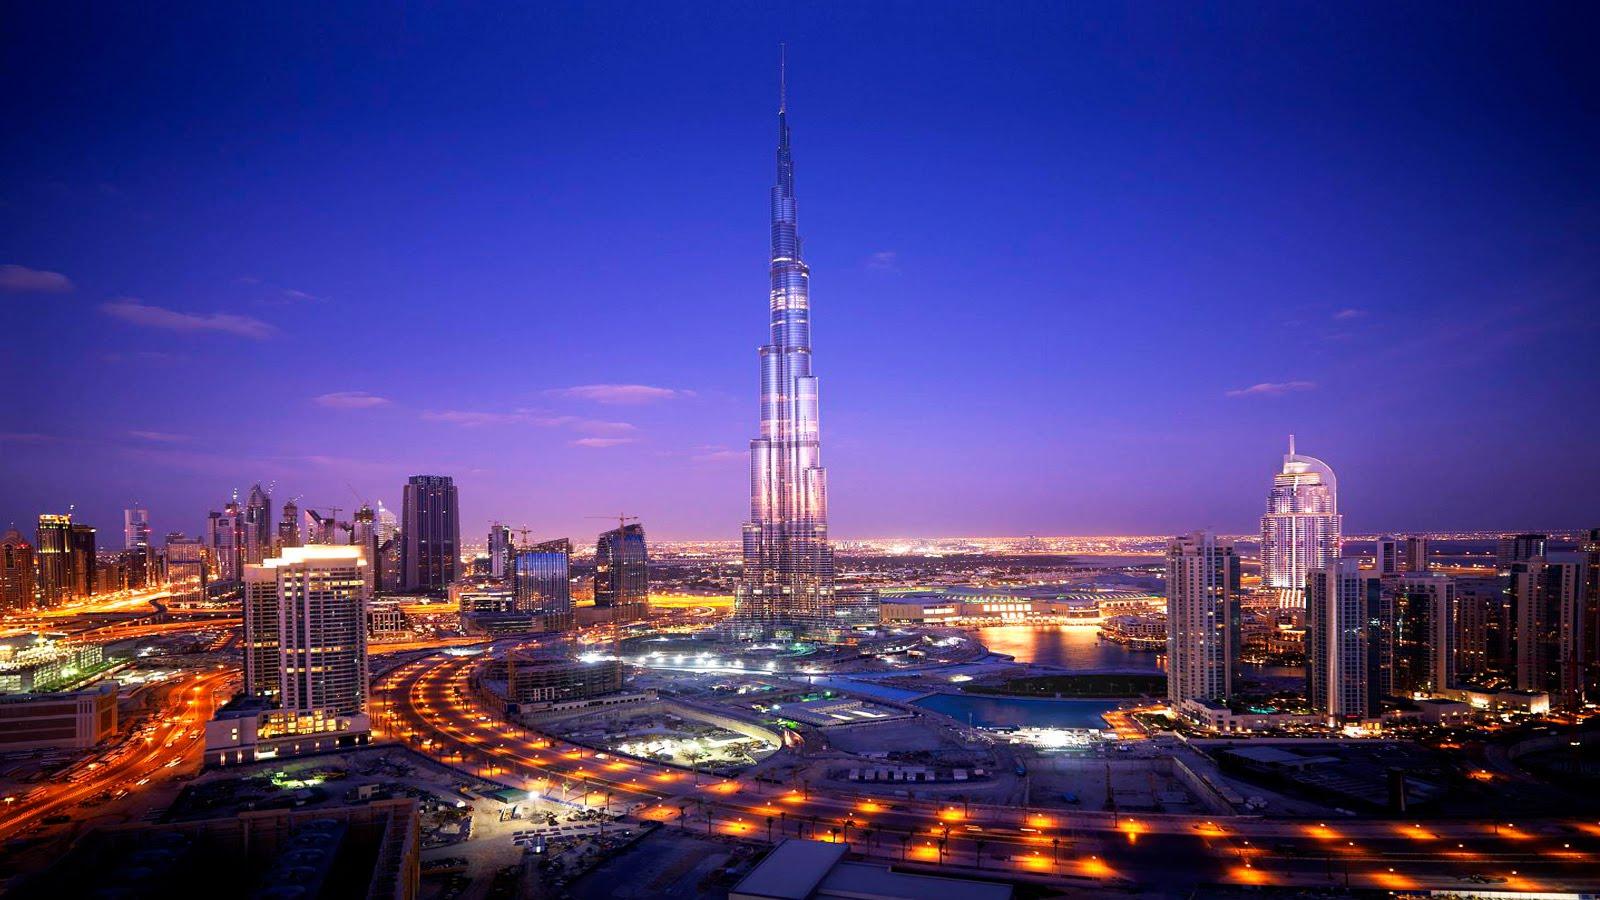 Beautiful Country Dubai Wallpapers | Cute Girls Celebrity Wallpaper